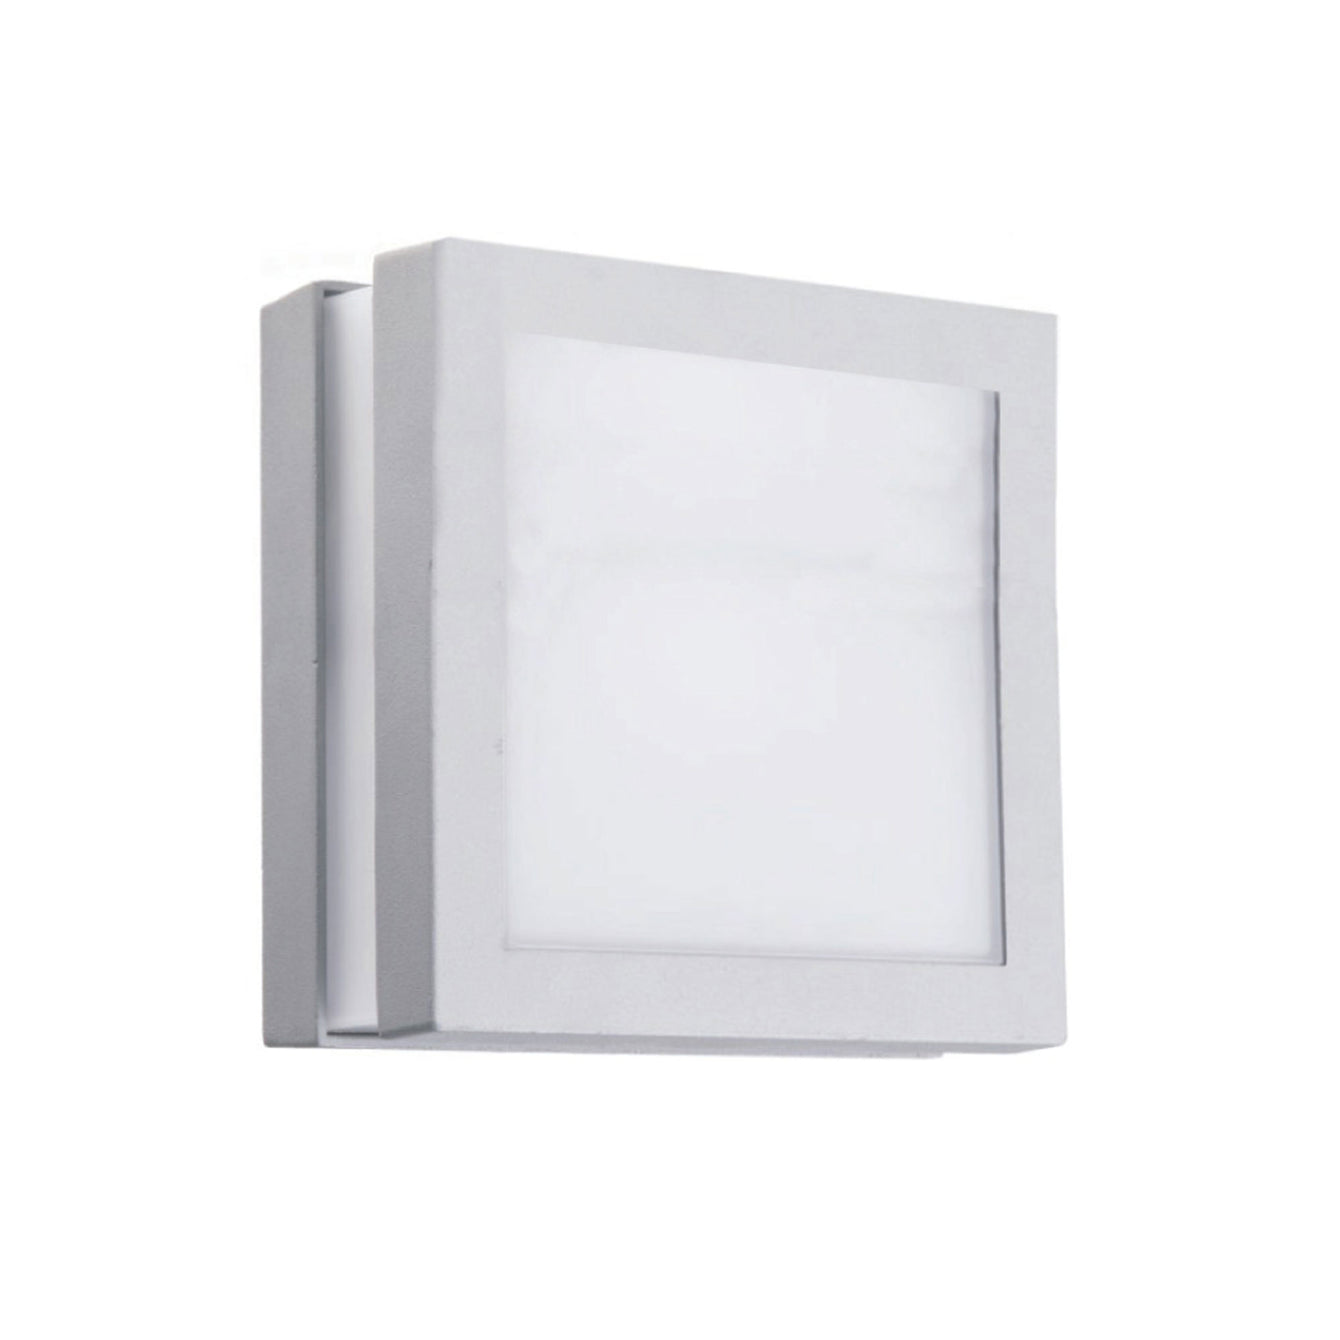 Iowa Outdoor Square and Round LED Light - Buy It Better Square